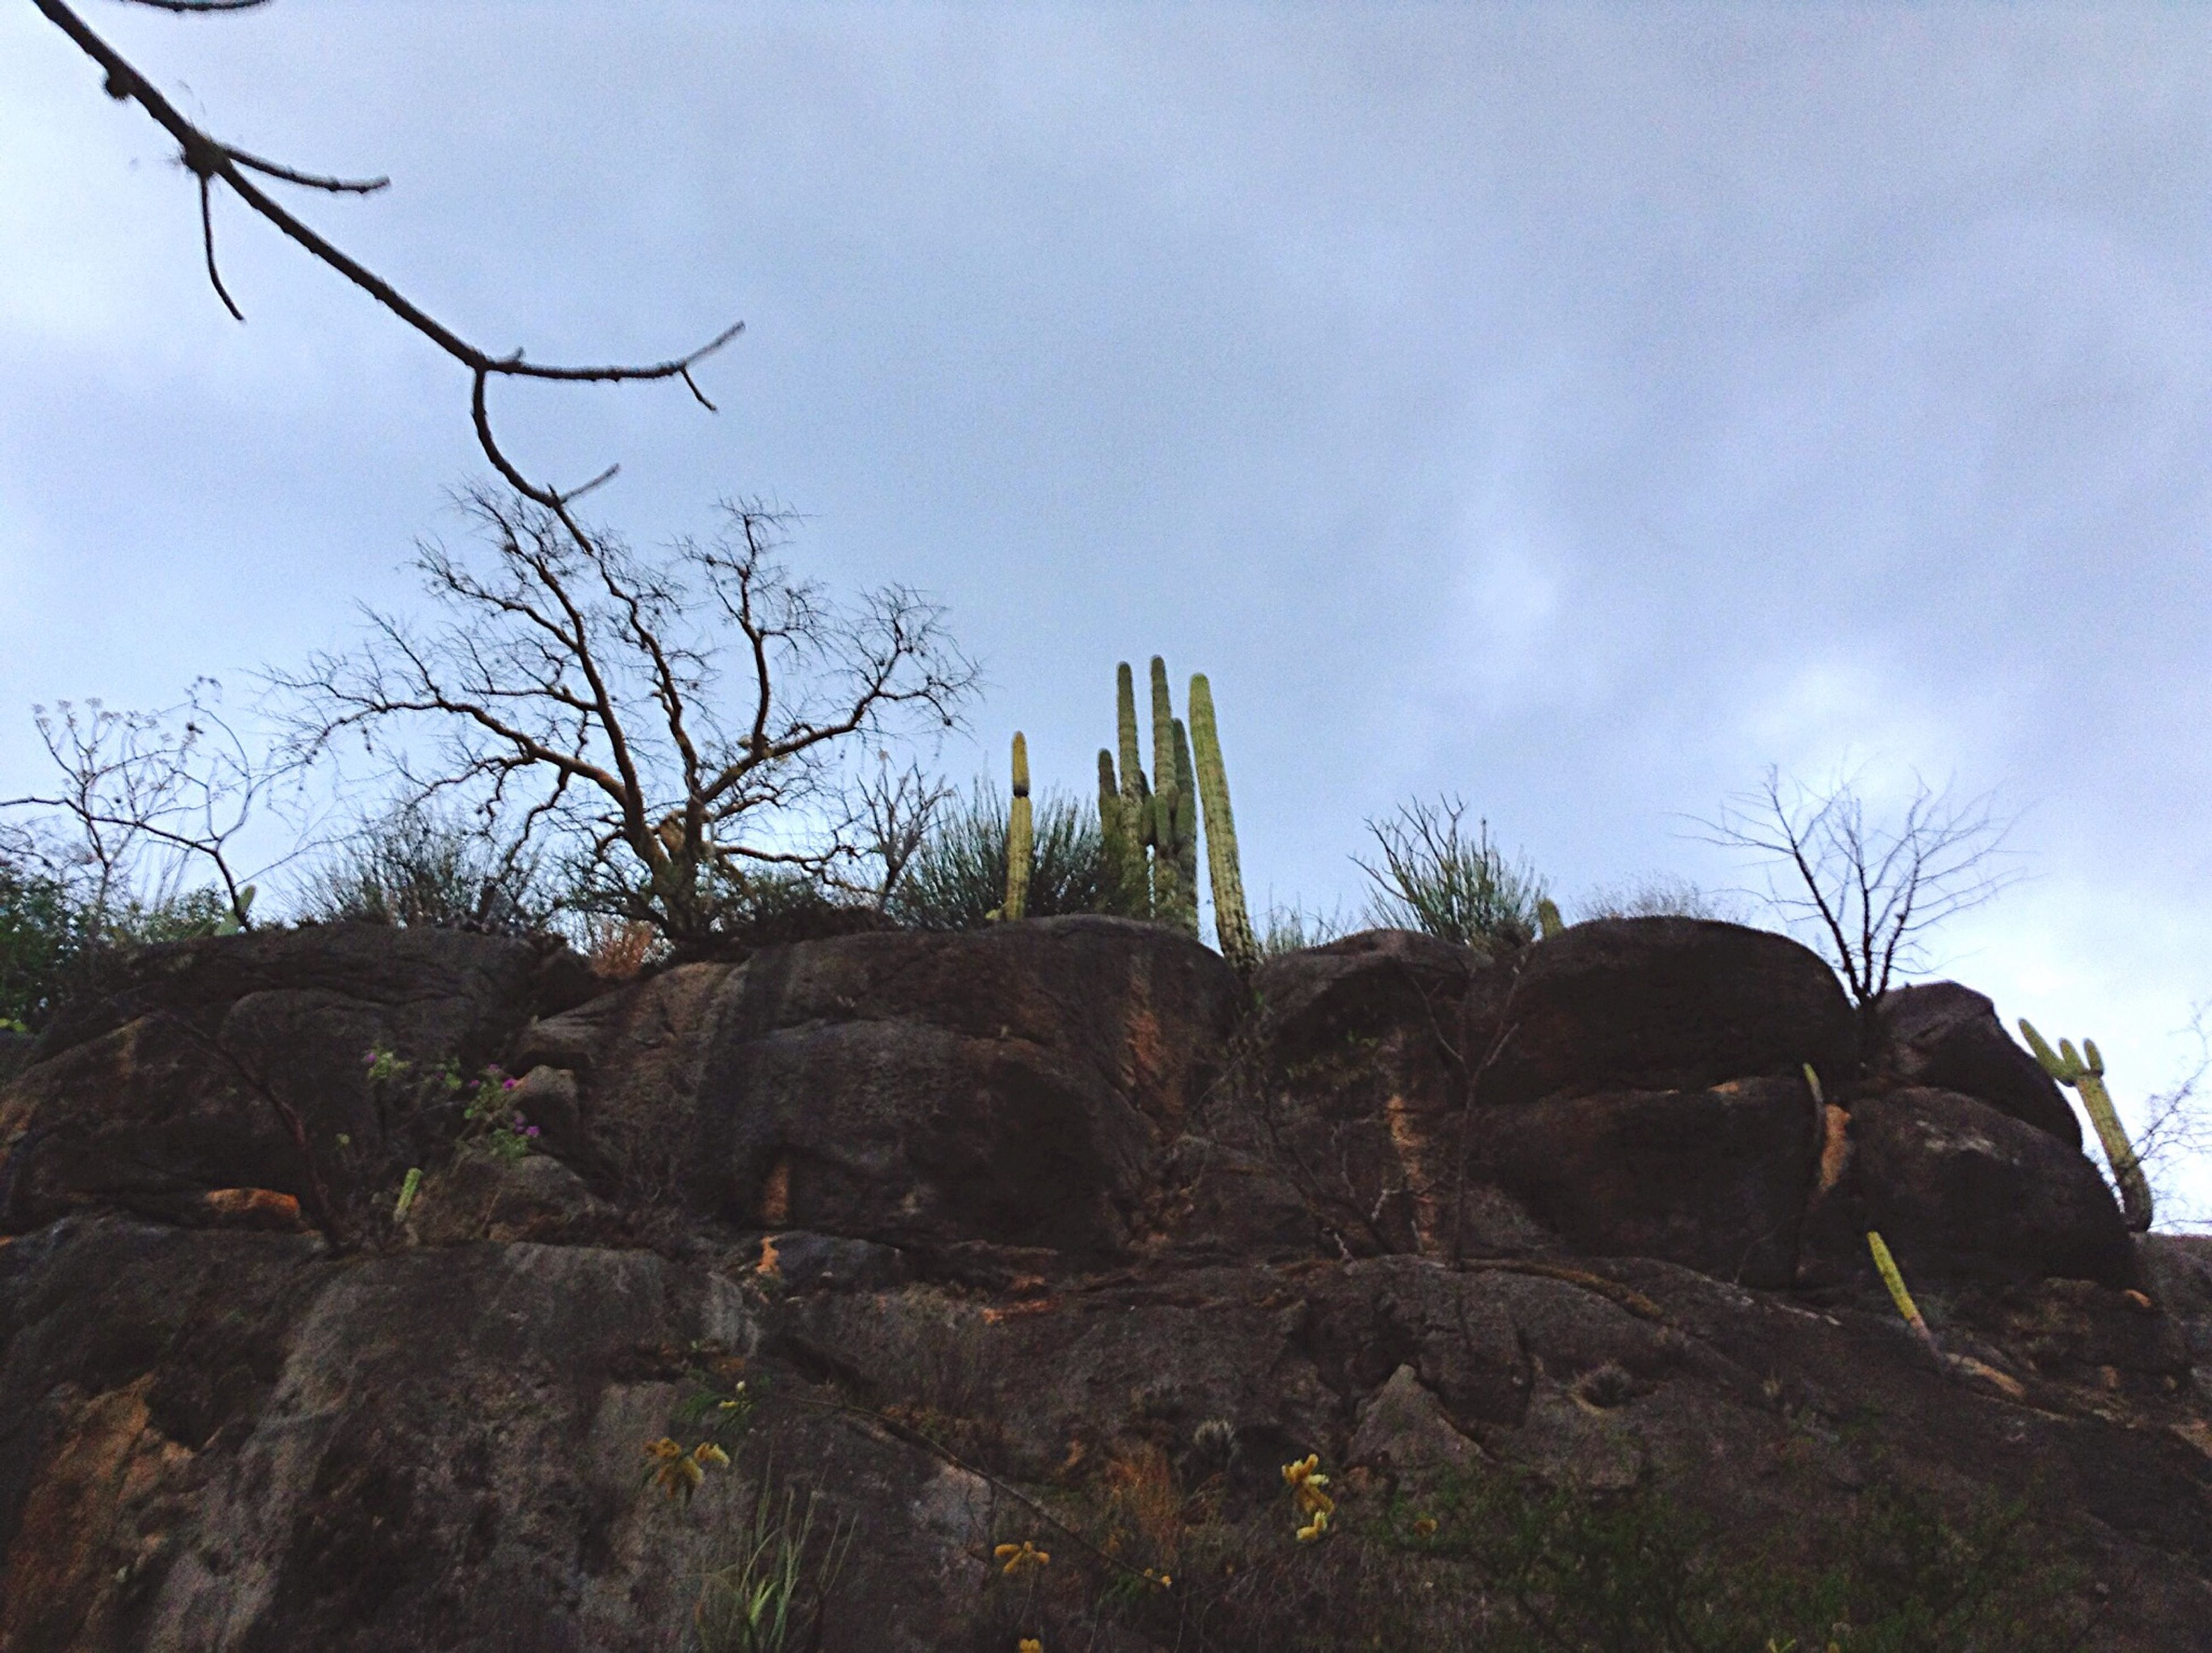 sky, tree, bare tree, low angle view, tranquility, cloud - sky, nature, tranquil scene, branch, cloud, landscape, rock - object, rock formation, scenics, growth, non-urban scene, day, beauty in nature, outdoors, no people